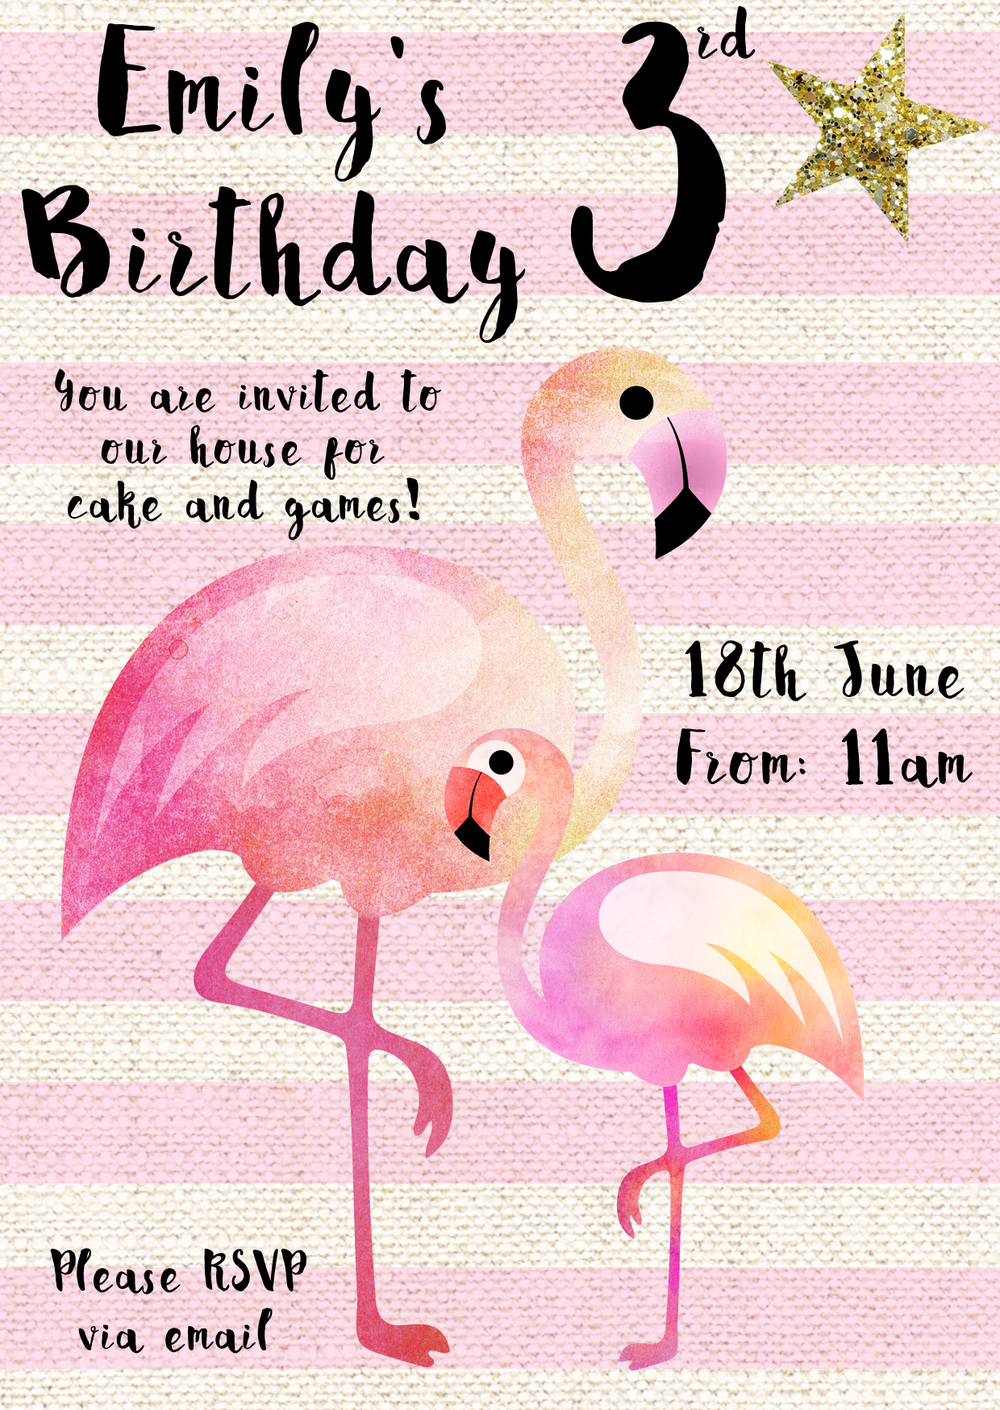 www.totallypinnable.com Flamingo Birthday Invitation, digital download, customisable. A6 in size.